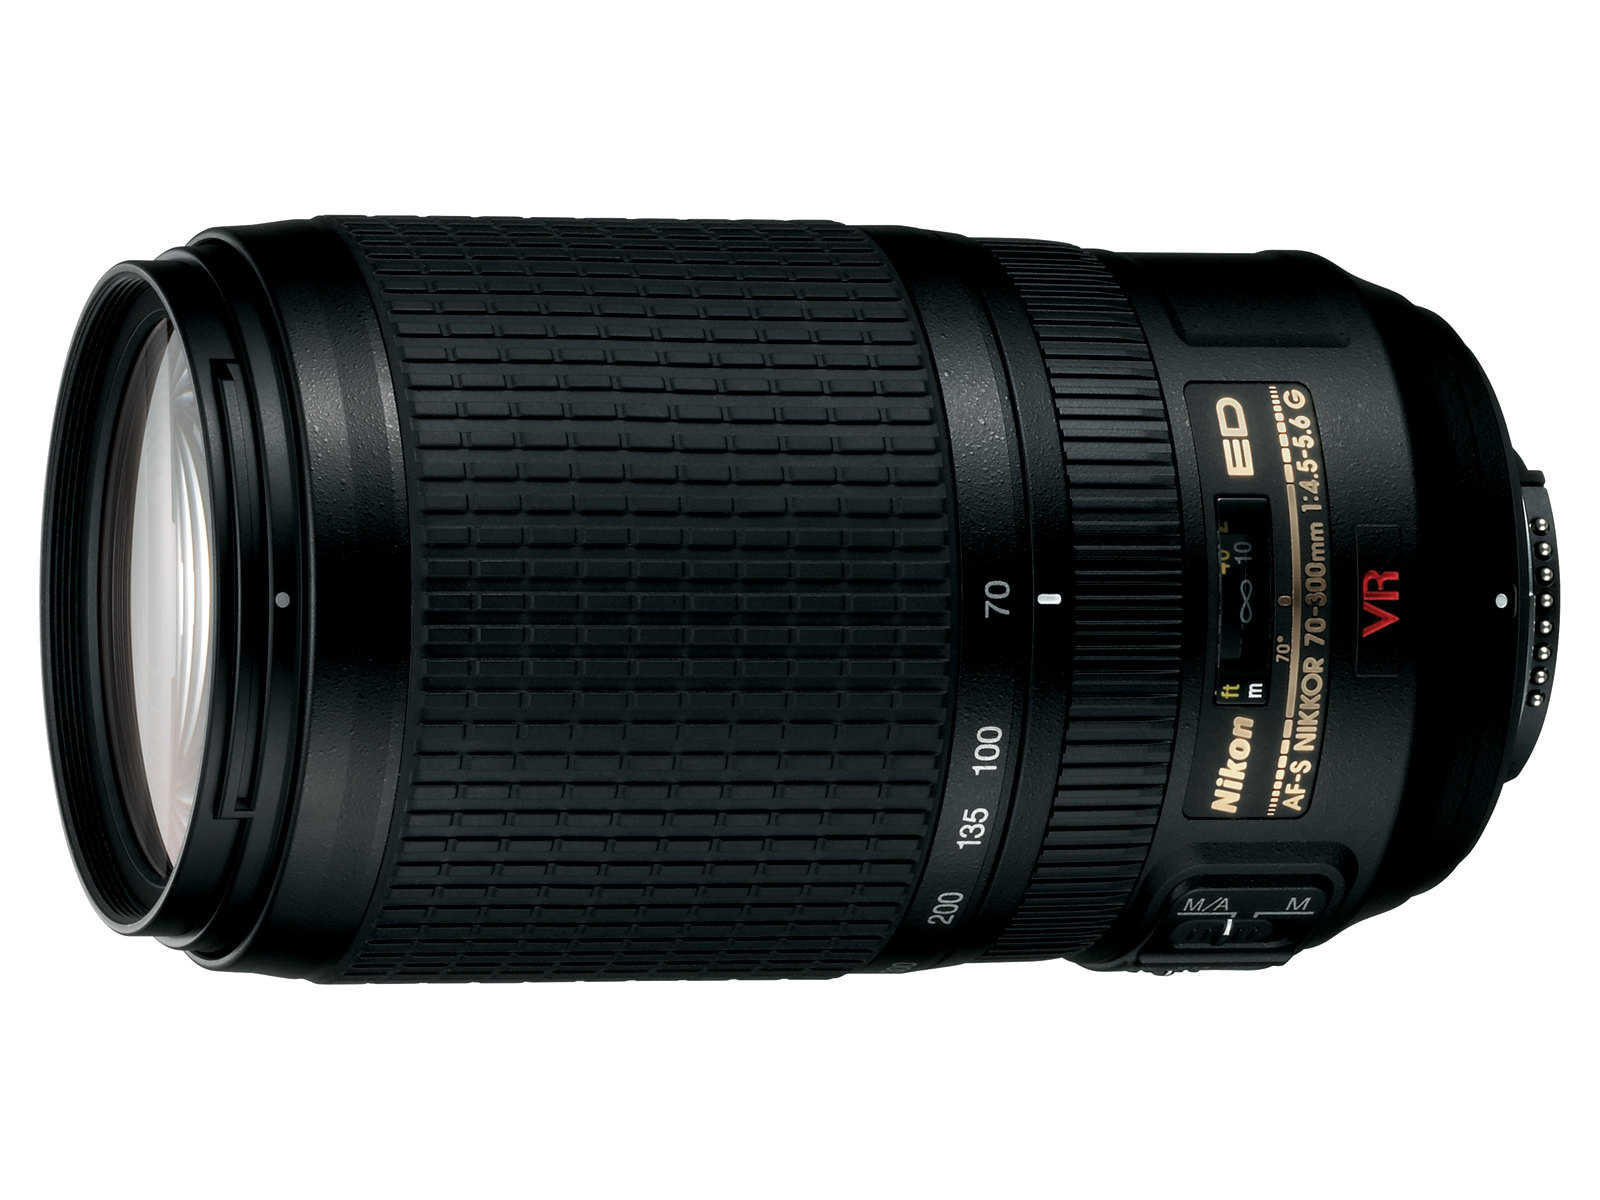 Nikon 70-300mm Lens: Is It Worth The Price Tag?